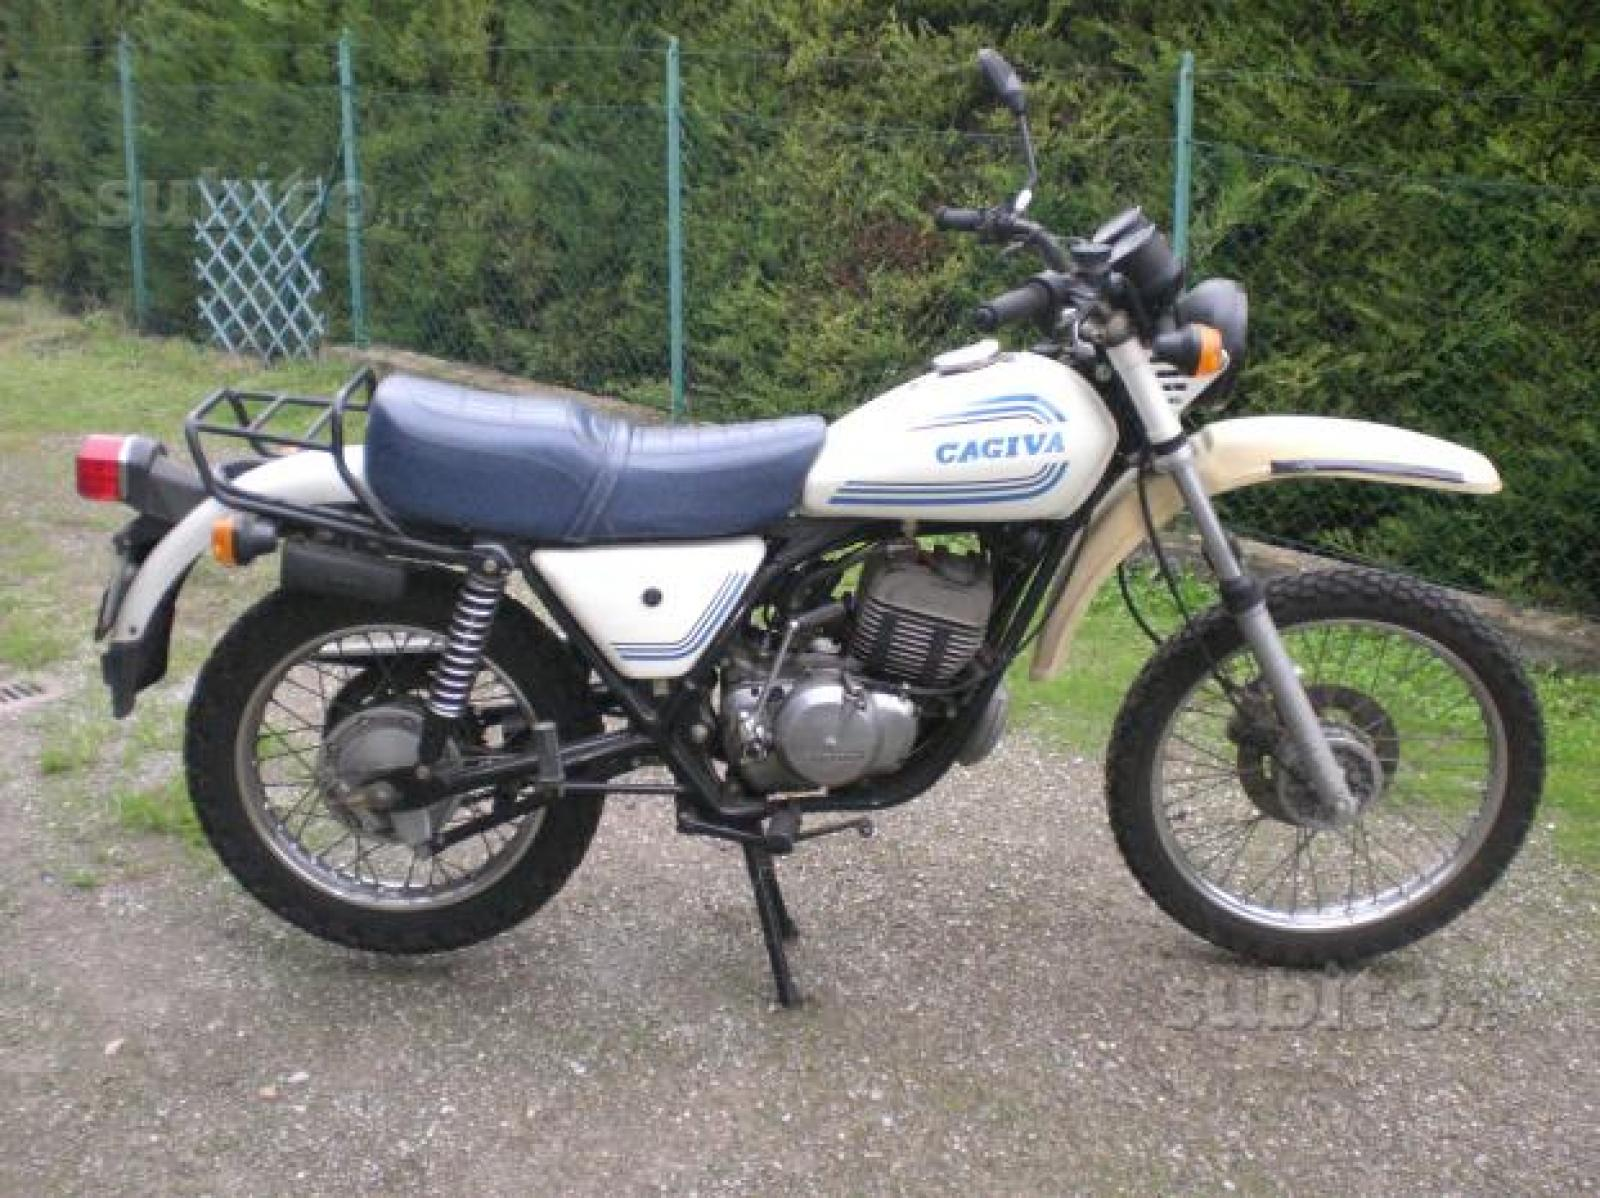 Cagiva SX 250 1983 images #67990